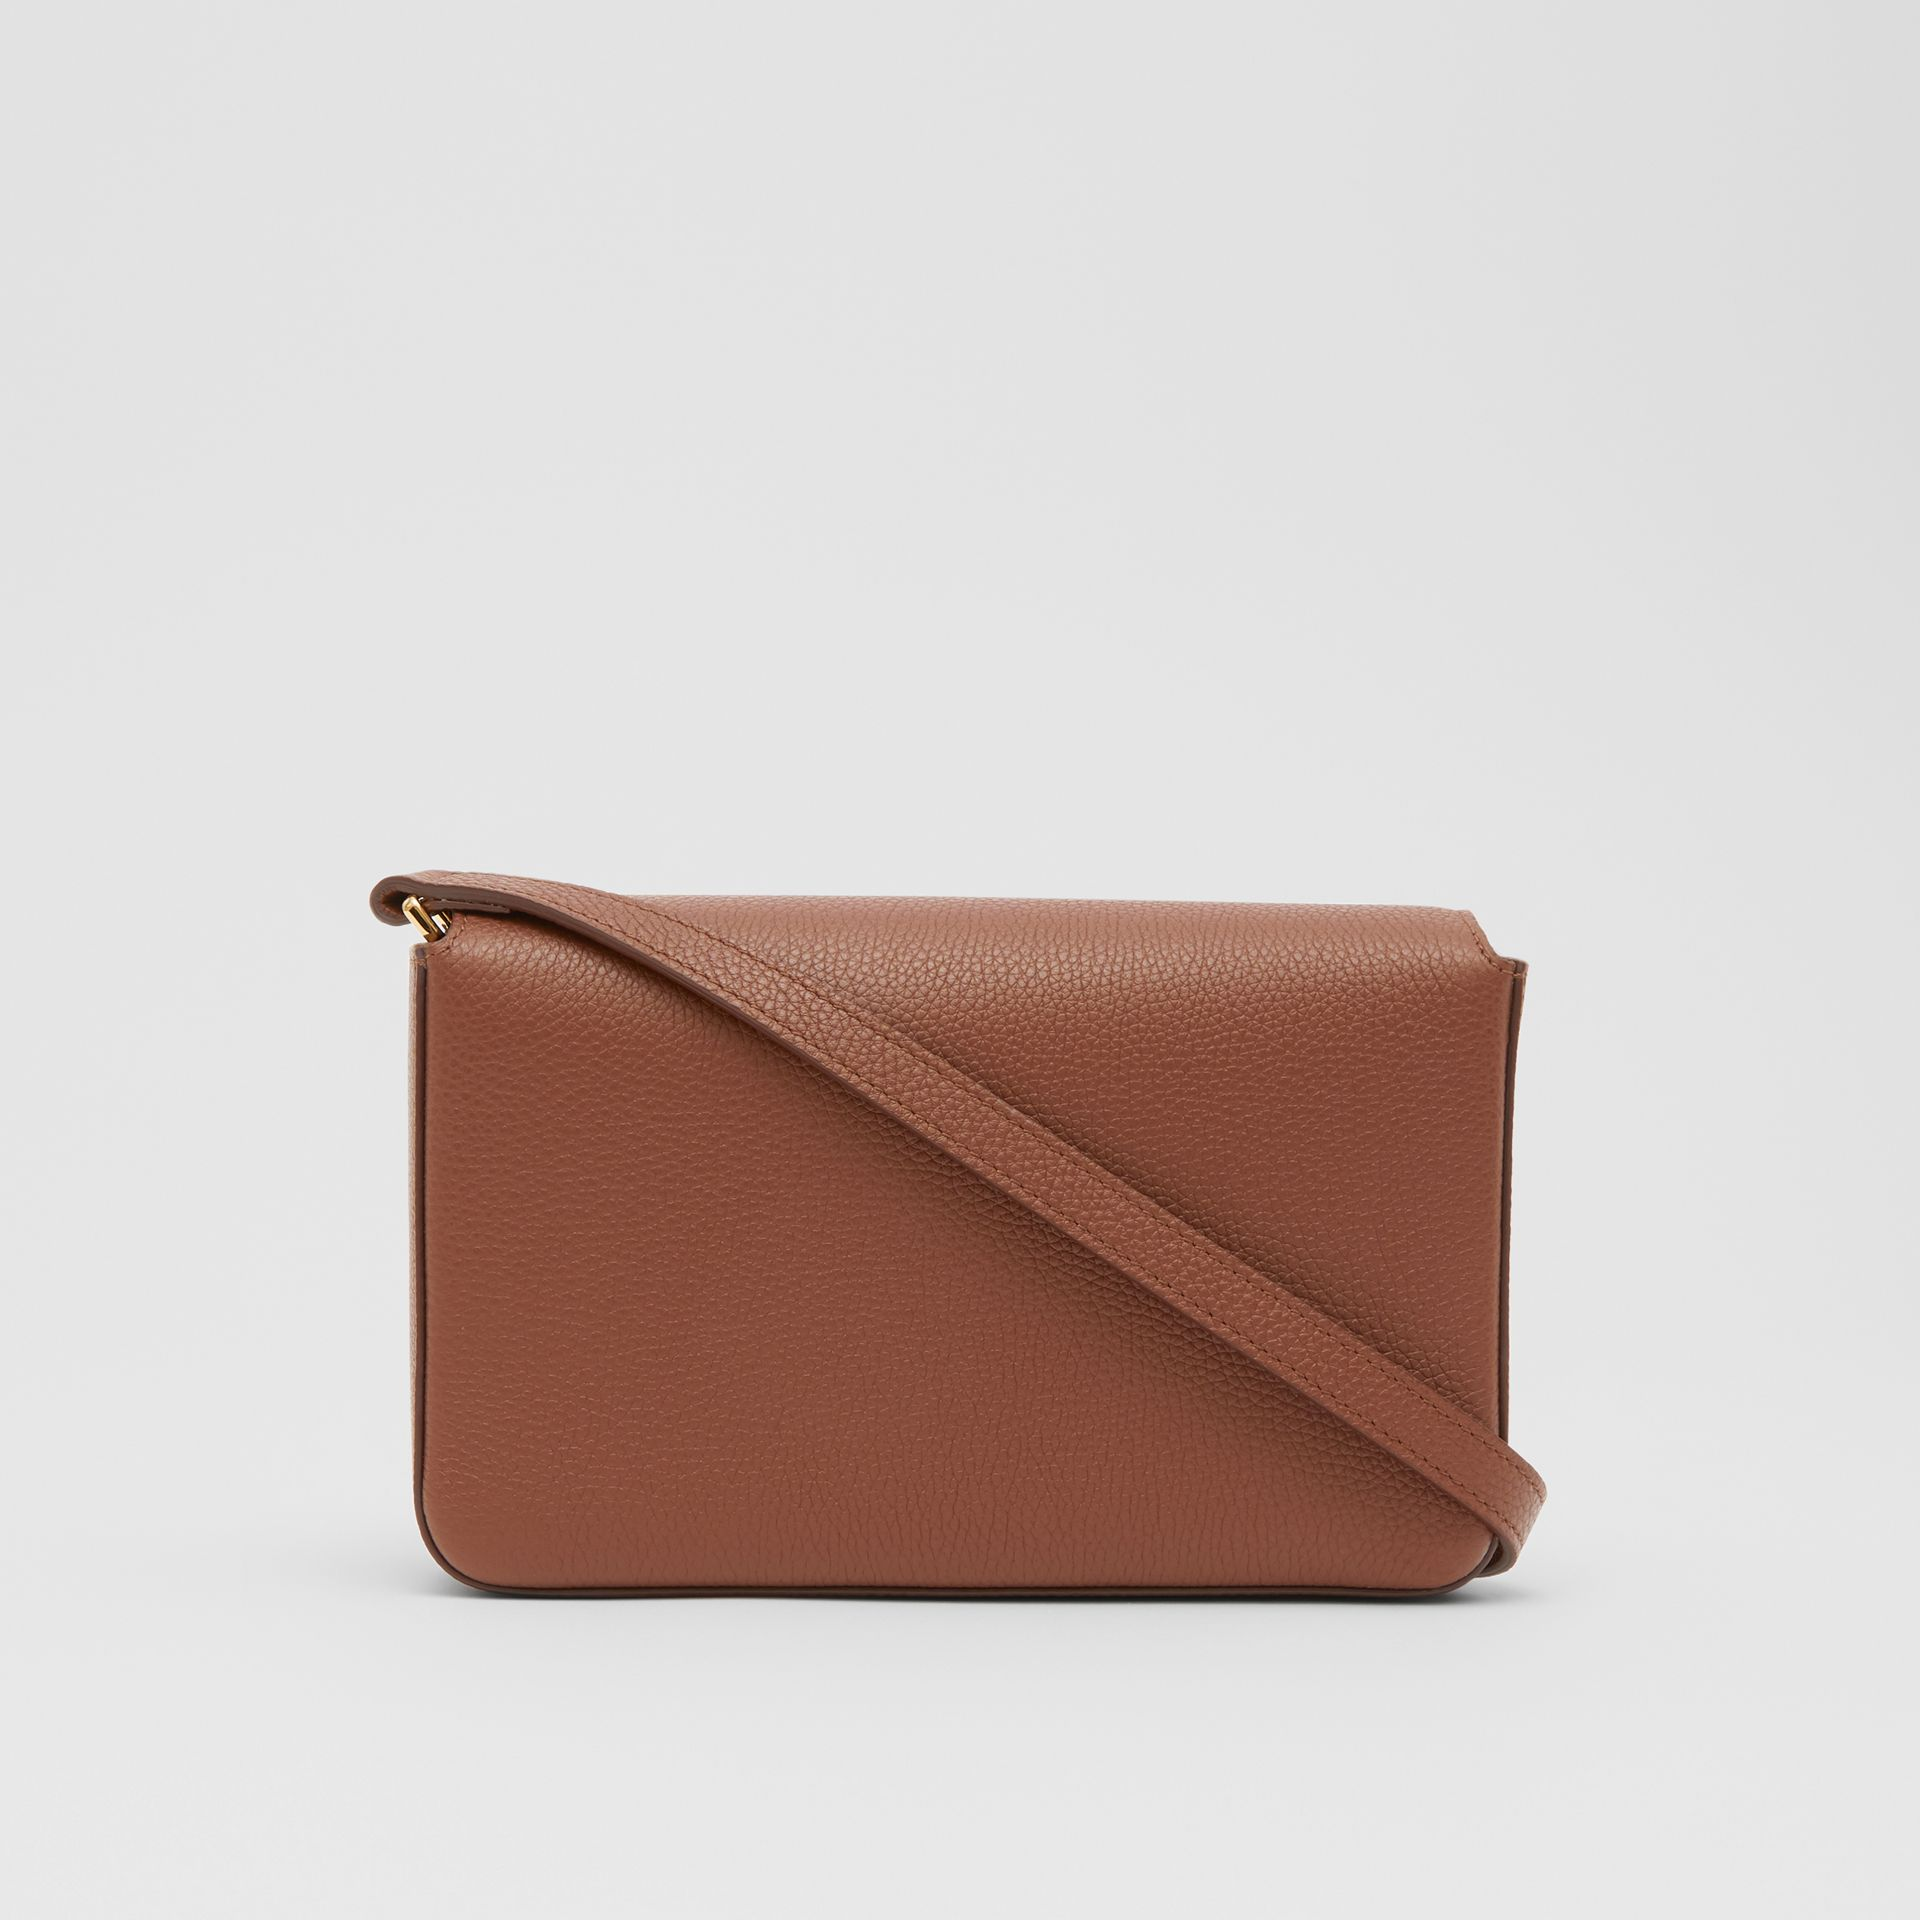 Small Leather and Vintage Check Crossbody Bag in Tan - Women | Burberry United Kingdom - gallery image 5